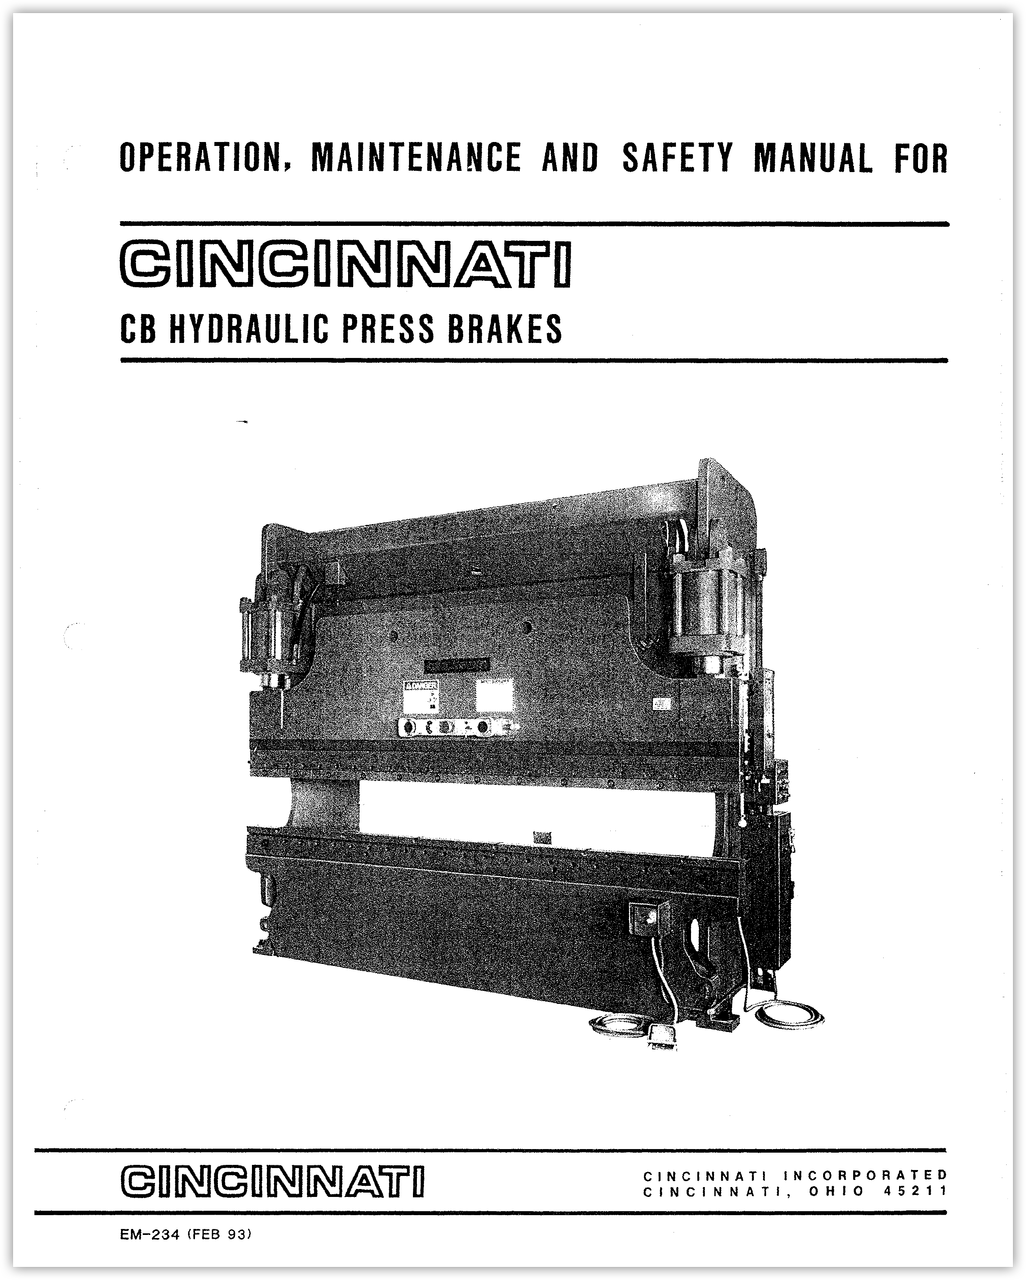 EM-234 (FEB 93) CB Hydraulic Press Brake - Operation, Safety, and Maintenance Manual